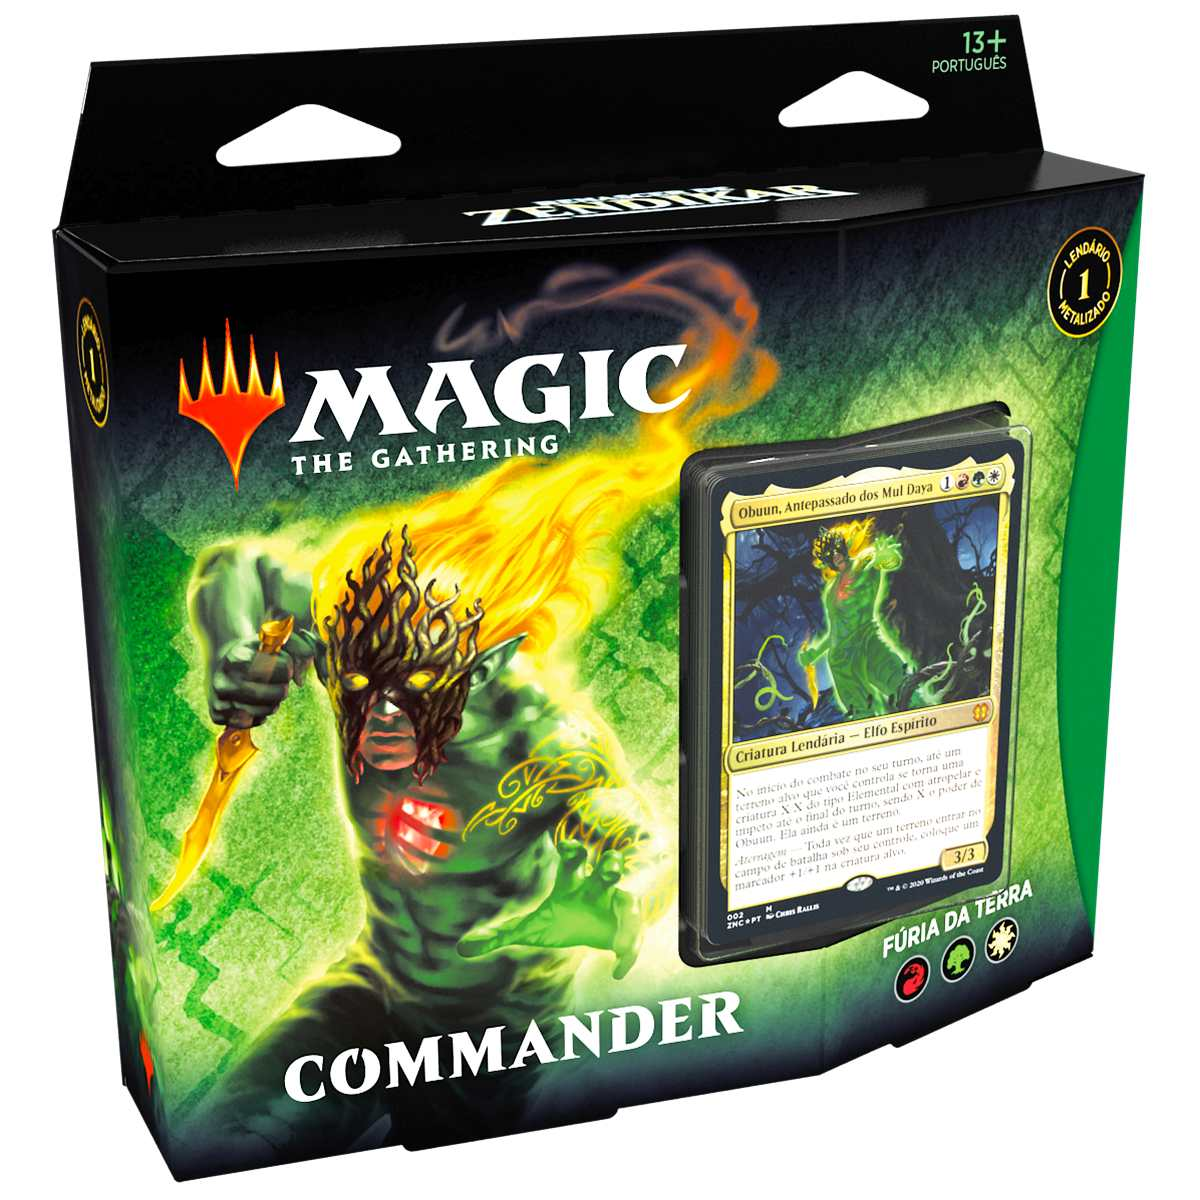 Magic Deck Commander Renascer Zendikar Fúria da Terra Obuun